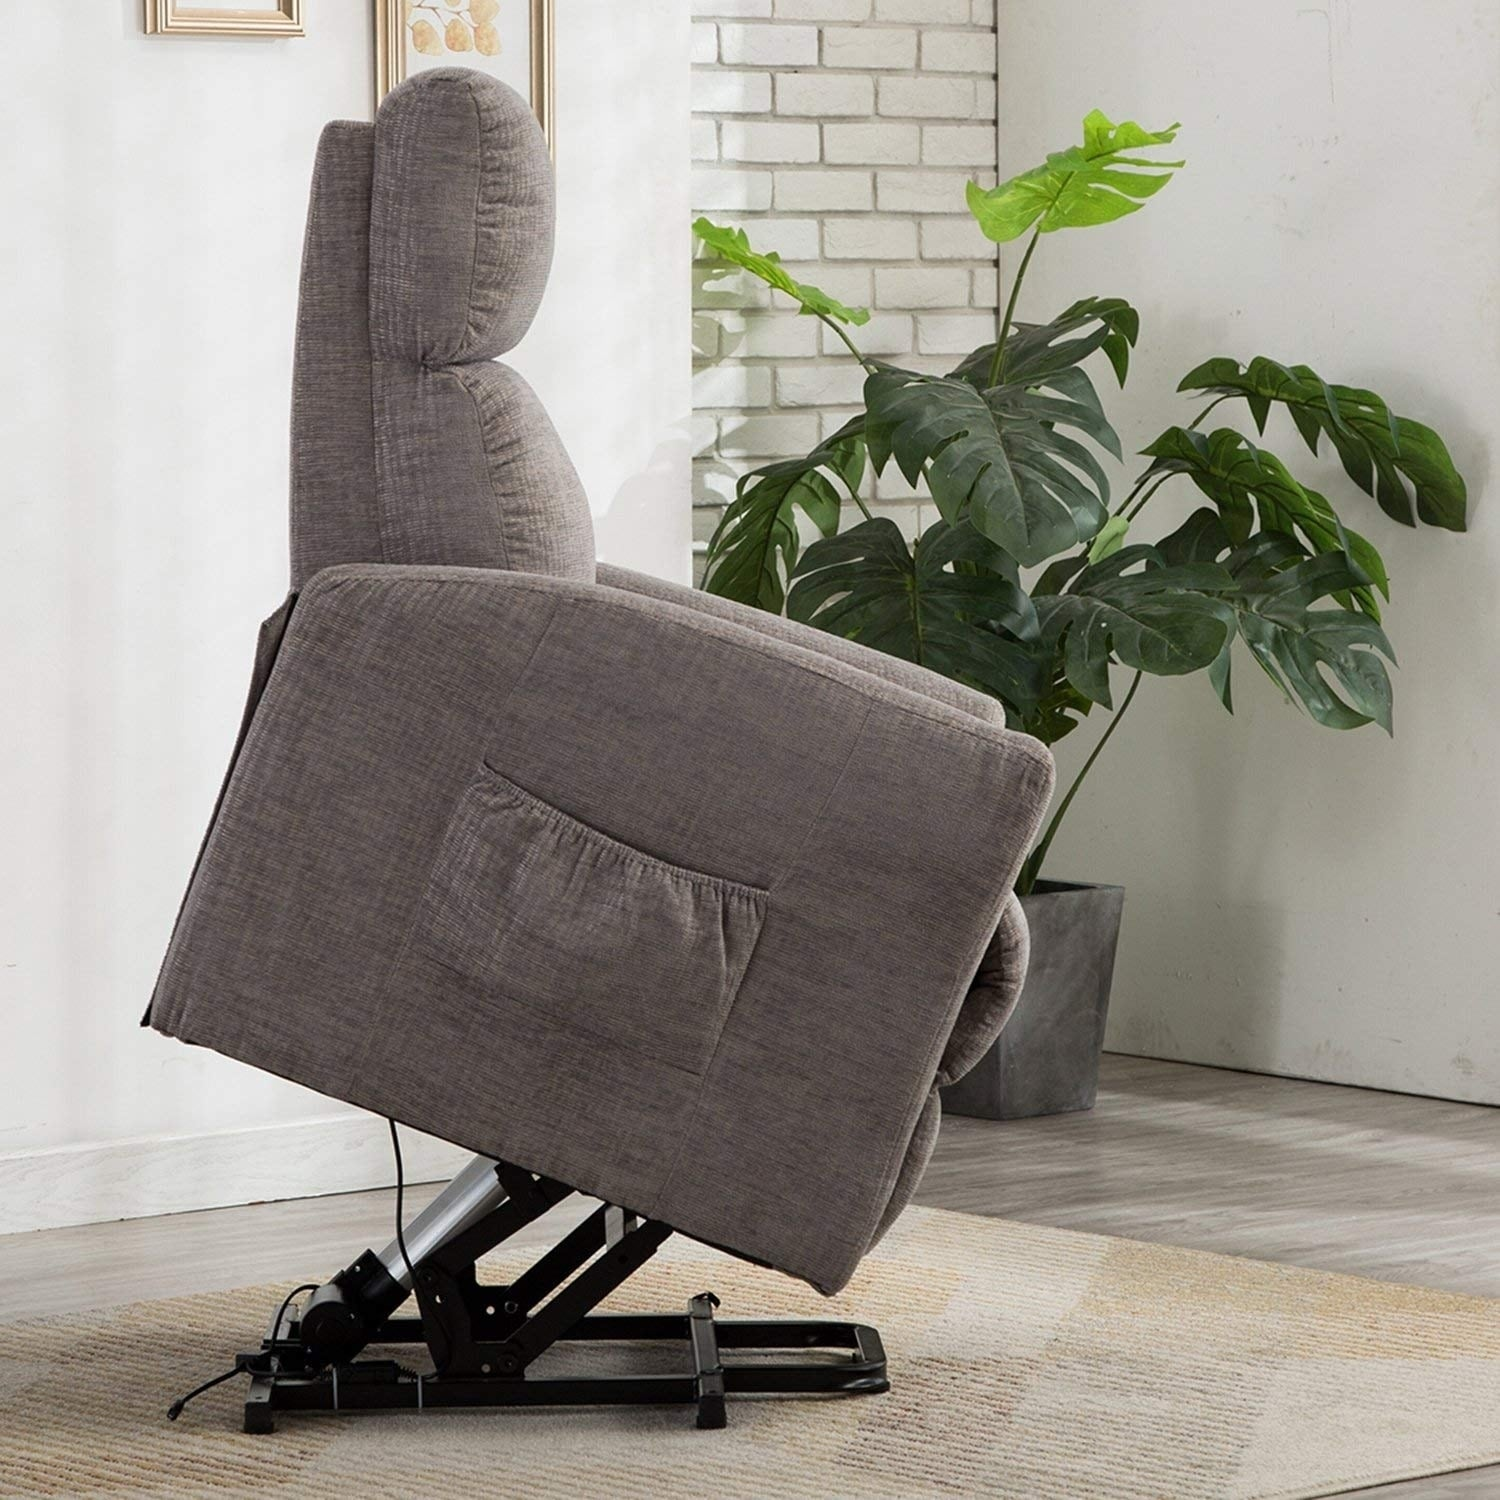 BONZY Lift Recliner Chair Power Lift Chair with Gentle Motor Velvet Cover-Buff